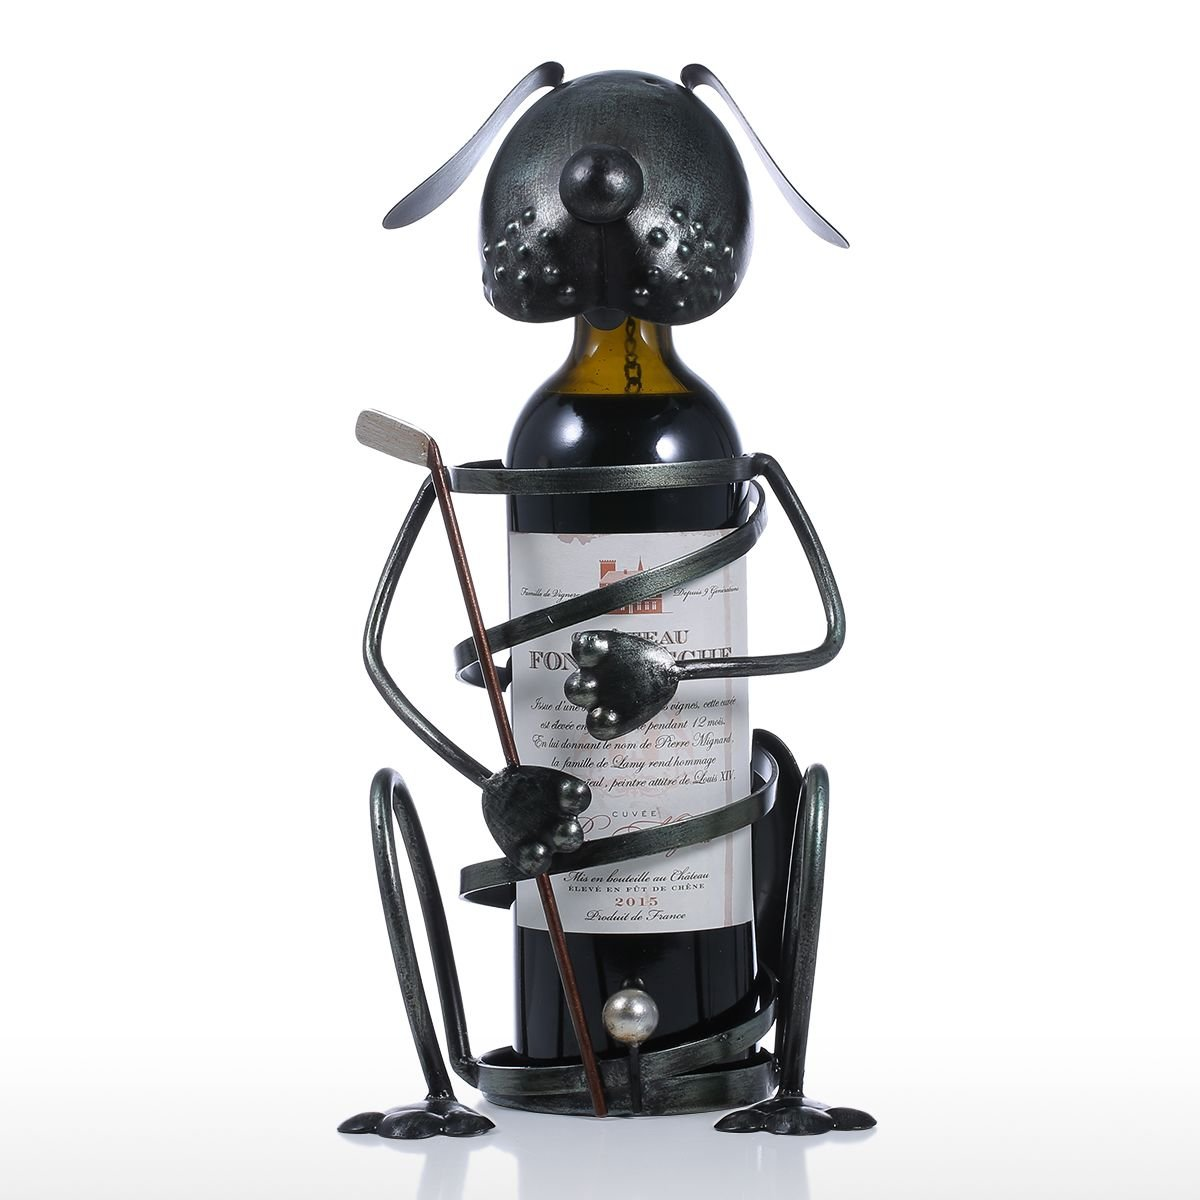 Tooarts Puppy Metal Wine Rack with Golf Iron Dog Wine Bottle Holder Statue Ornament